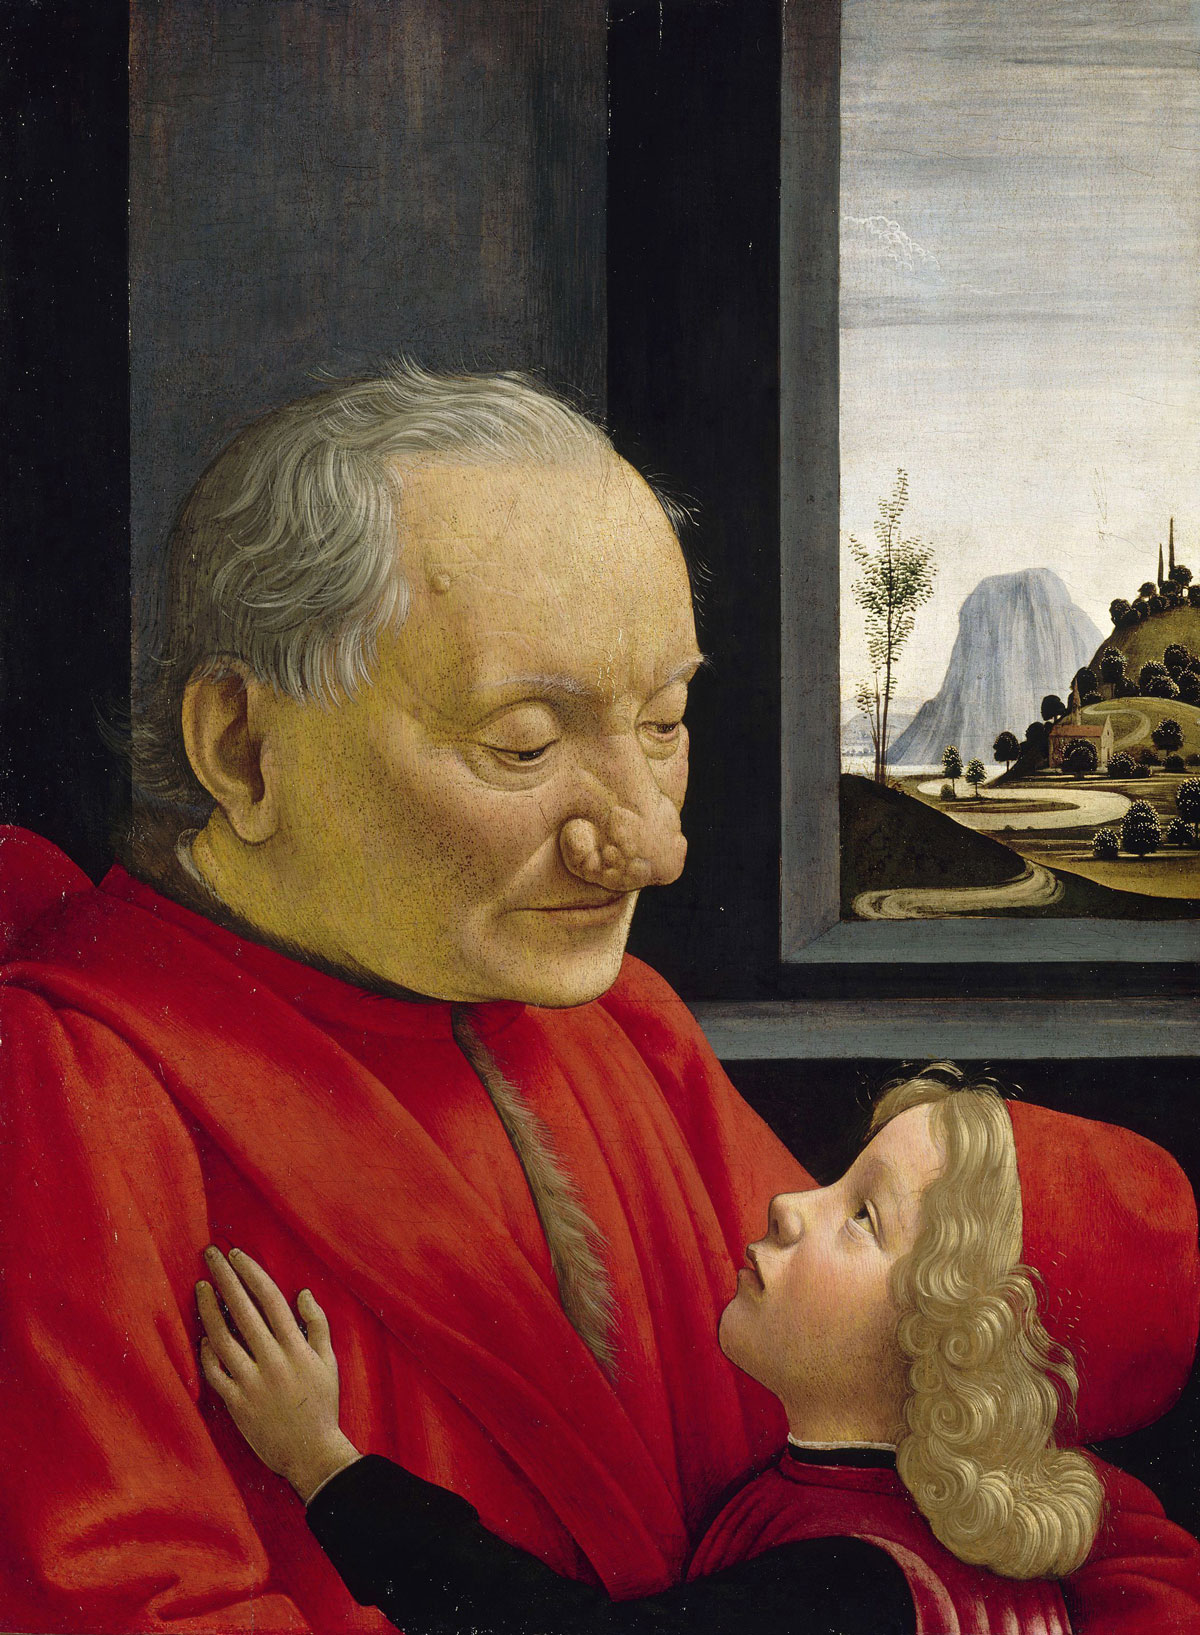 """Old Man and Young Boy"", Ghirlandaio, c. 1490"